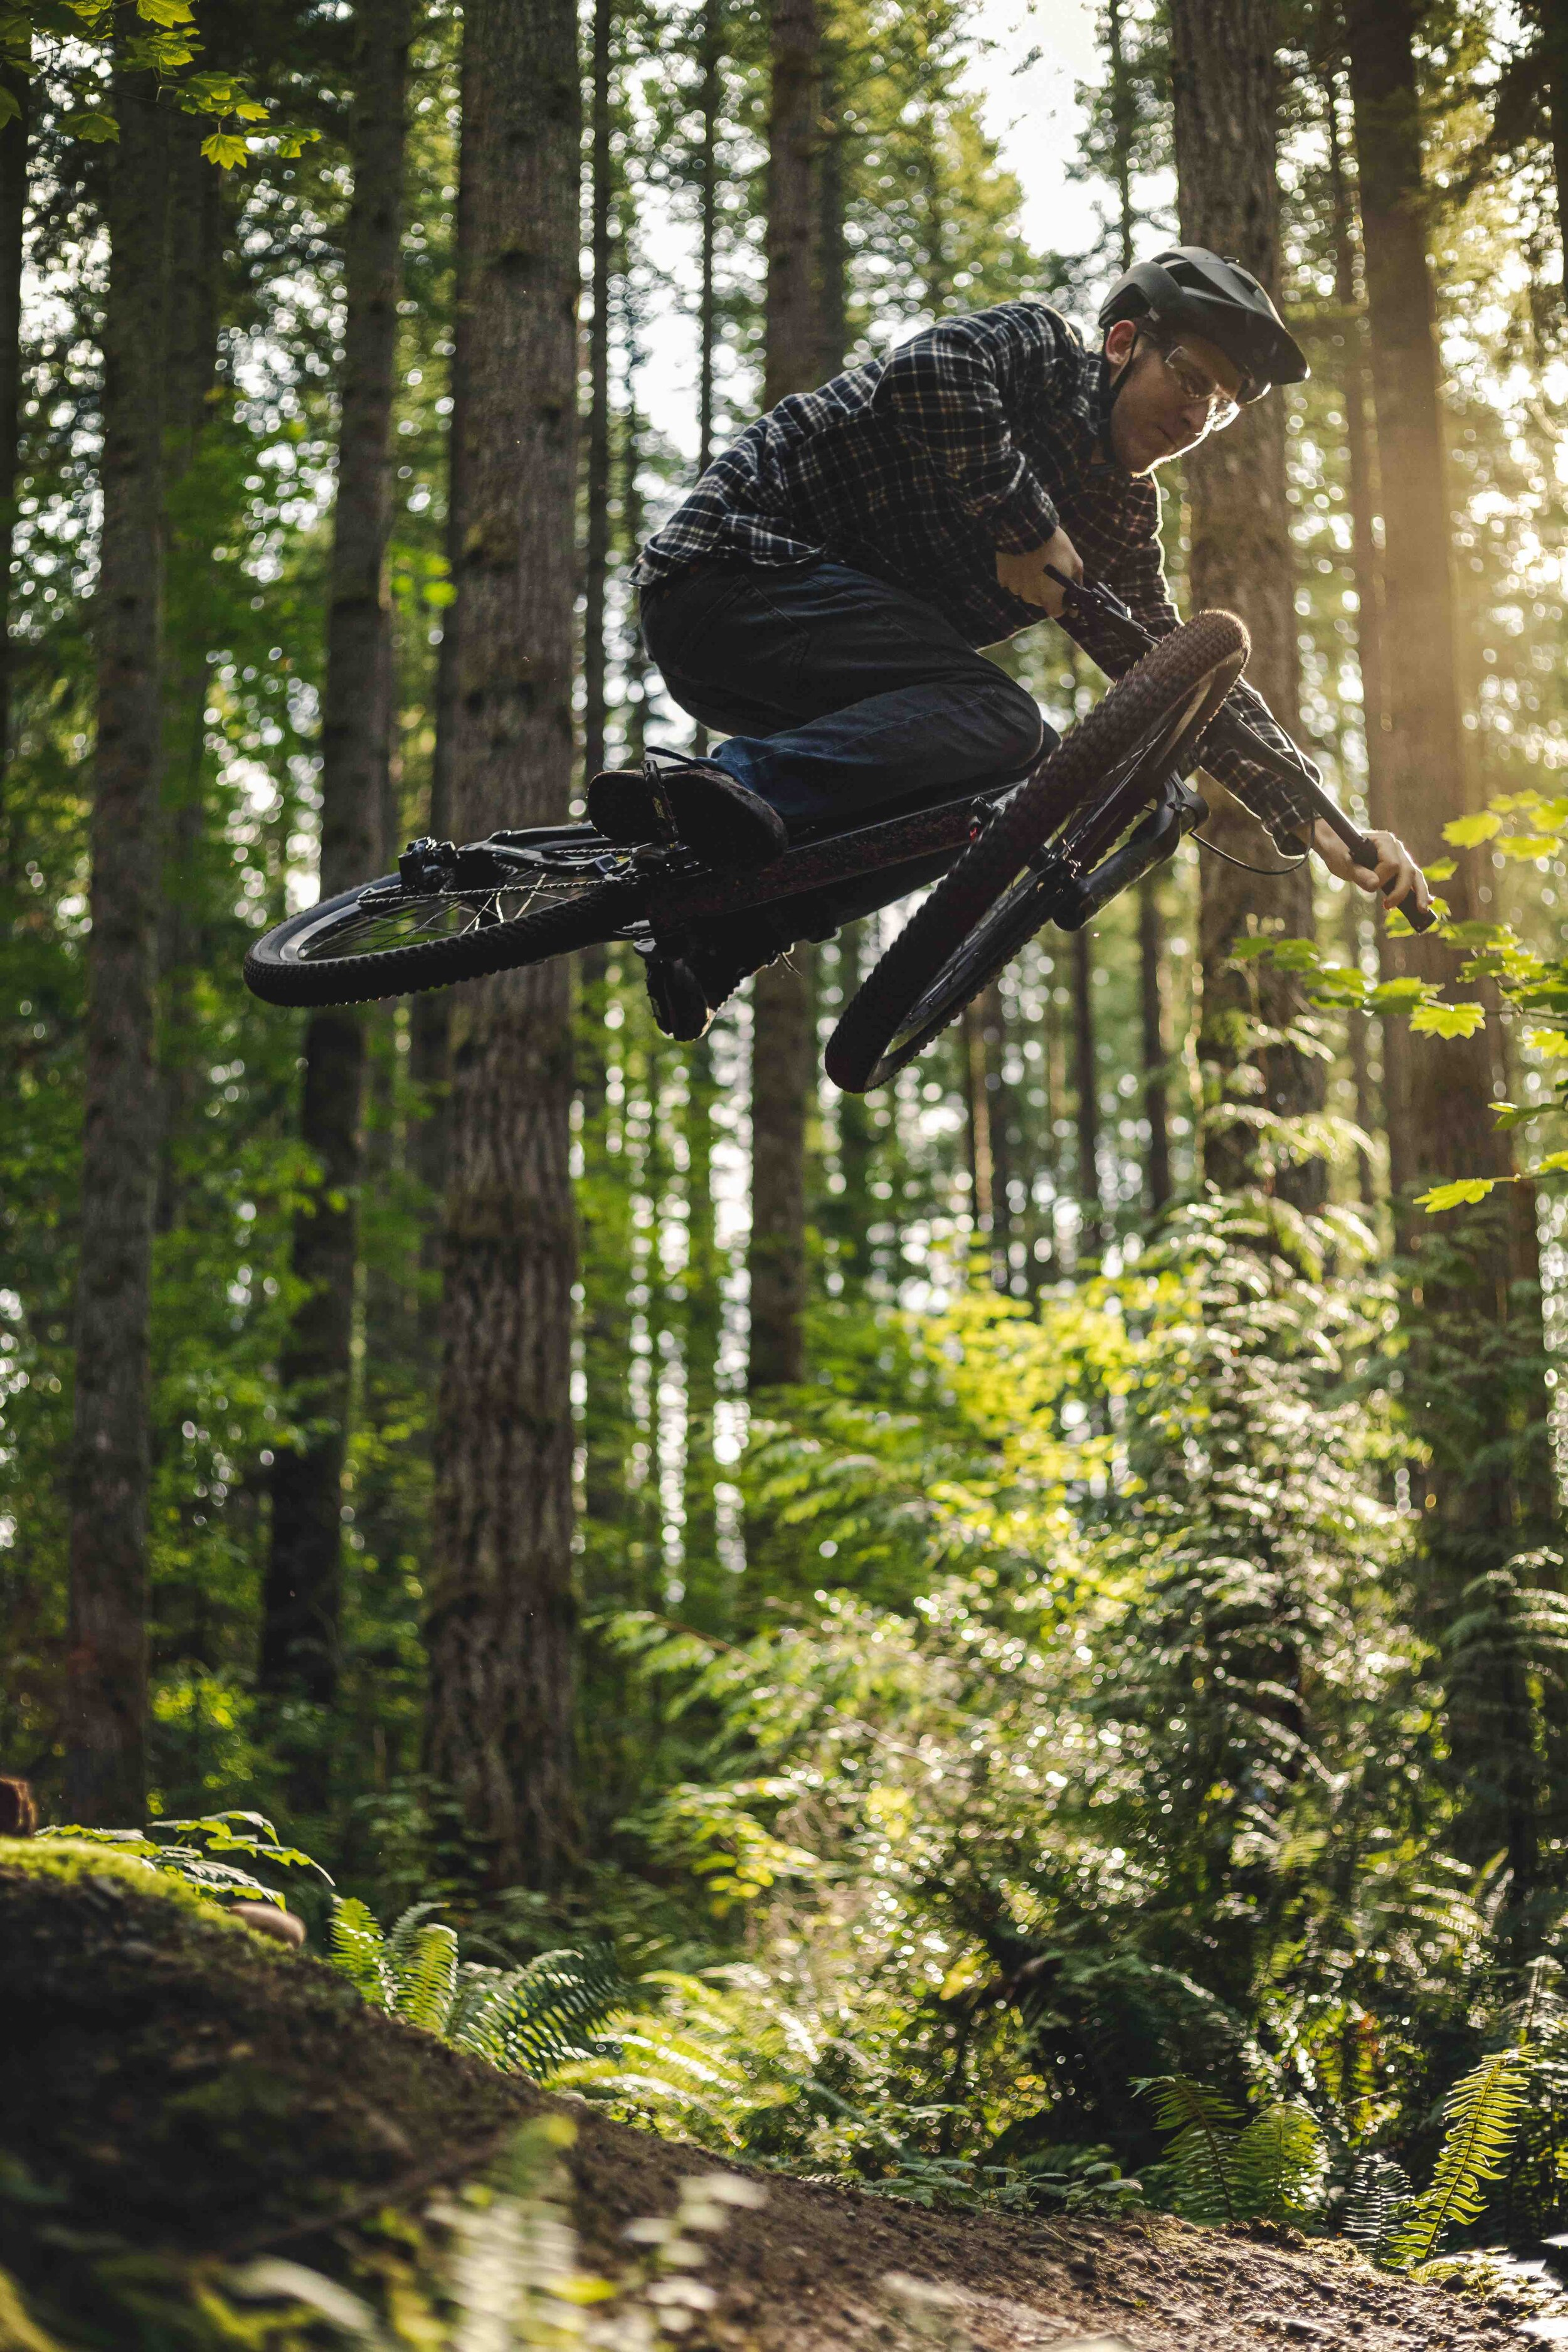 Amazing_Mountain_Bike_Jump_Trick_in_Forest_with_Golden_Hour_Lighting.jpeg